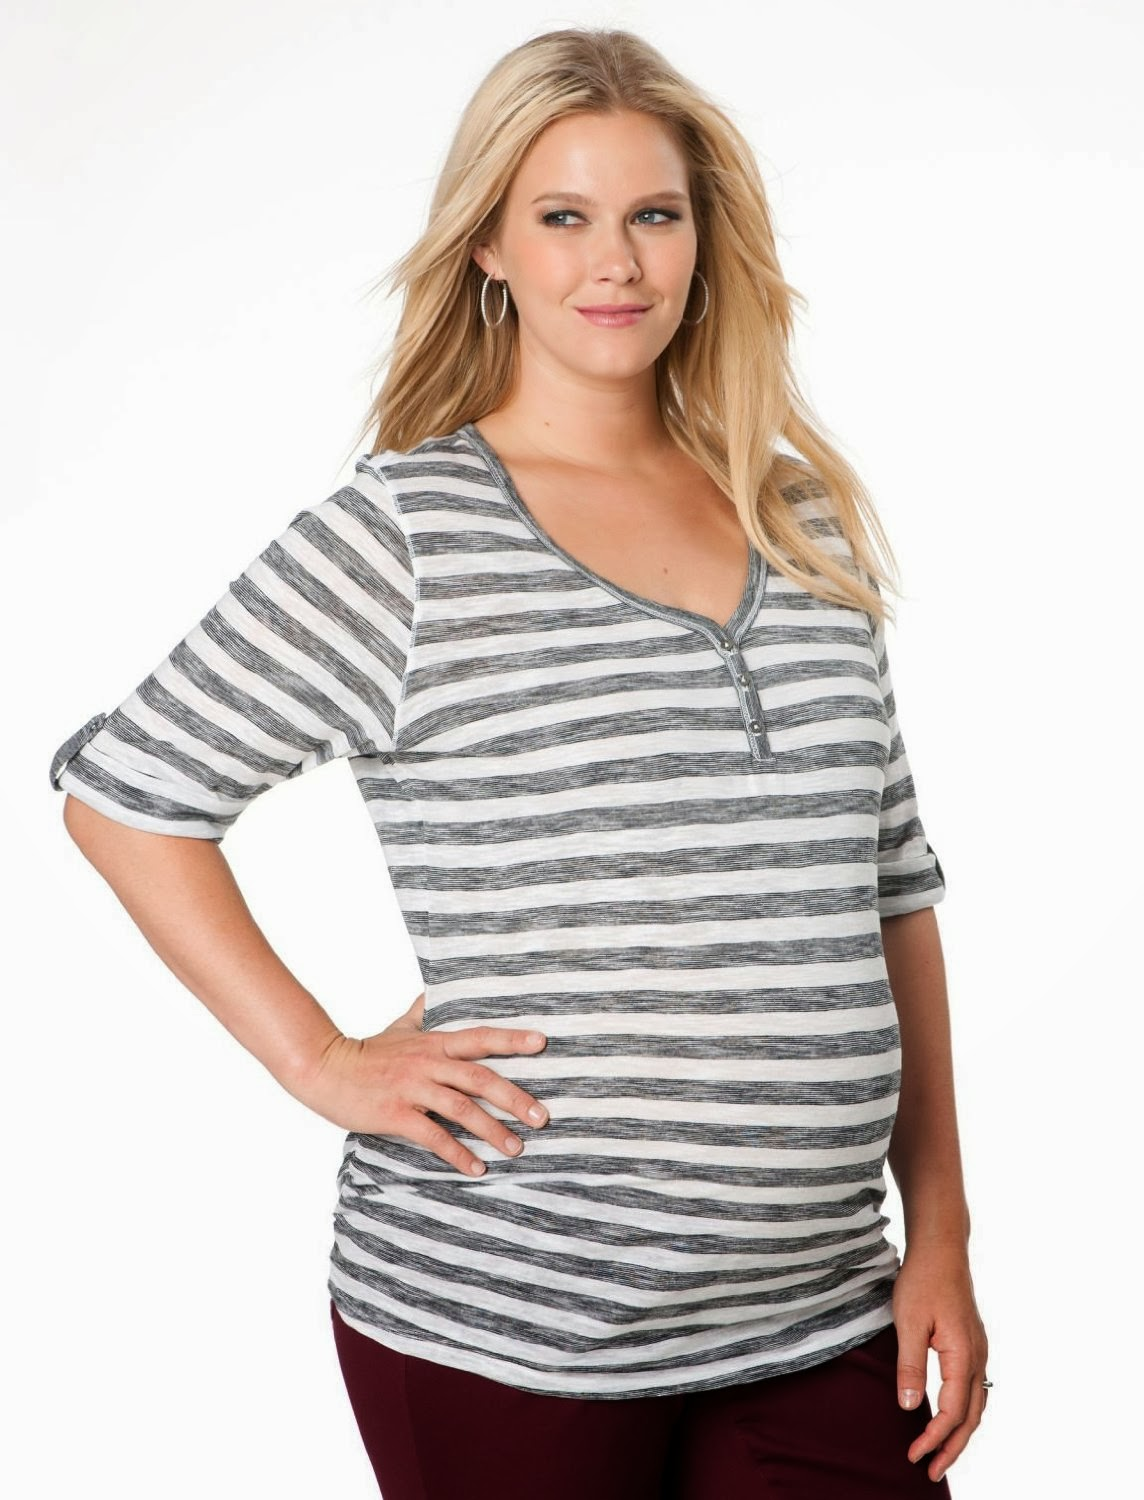 Shop for maternity pregnancy tops online at Target. Free shipping on purchases over $35 and save 5% every day with your Target REDcard.